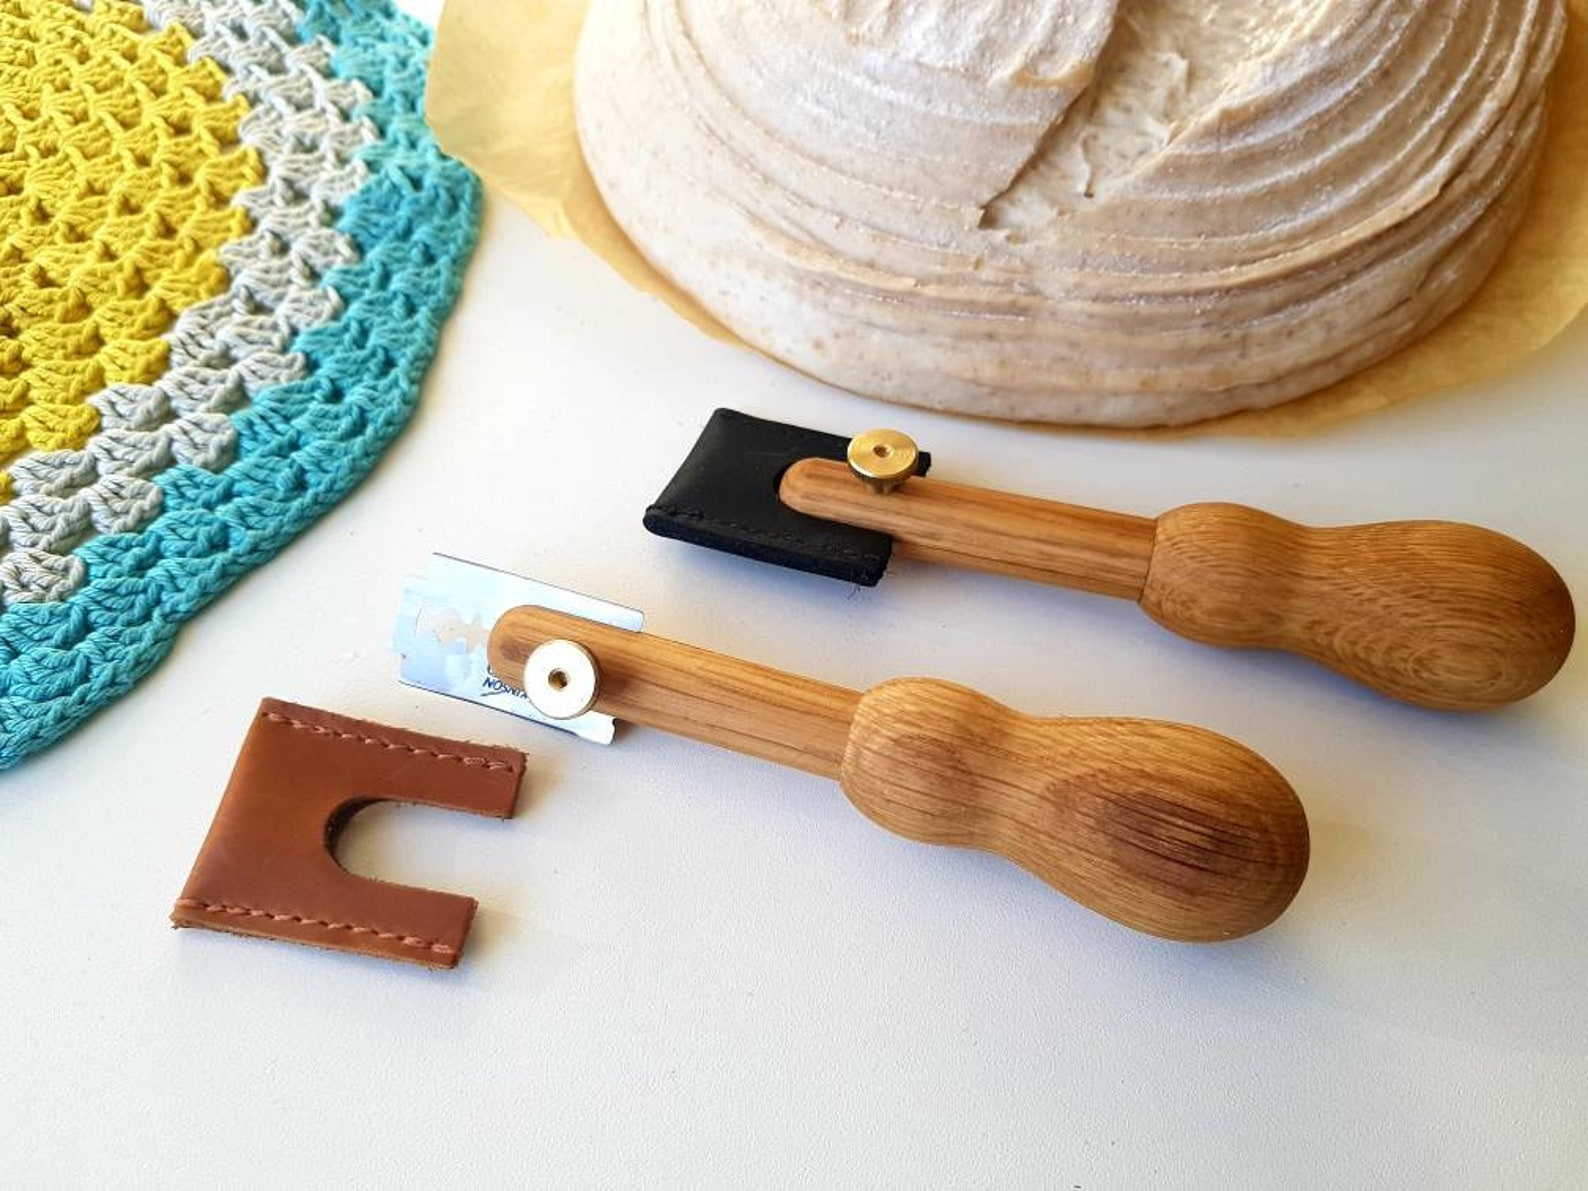 BUY this Personalized bread scoring lame from Etsy!